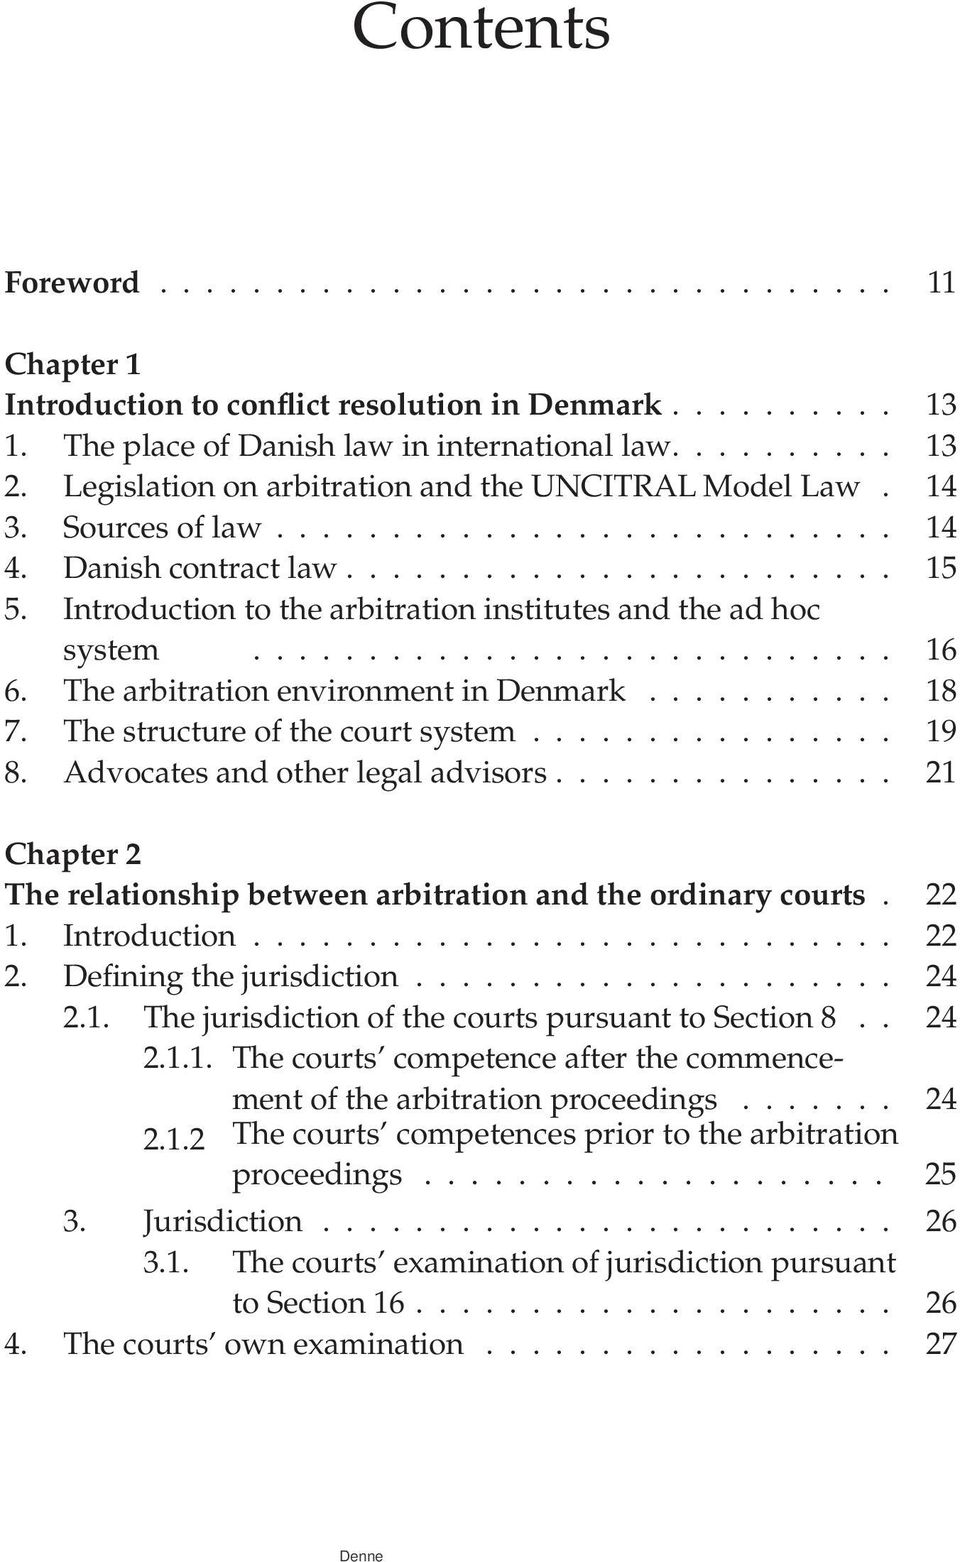 Introduction to the arbitration institutes and the ad hoc system............................ 16 6. The arbitration environment in Denmark........... 18 7. The structure of the court system................ 19 8.